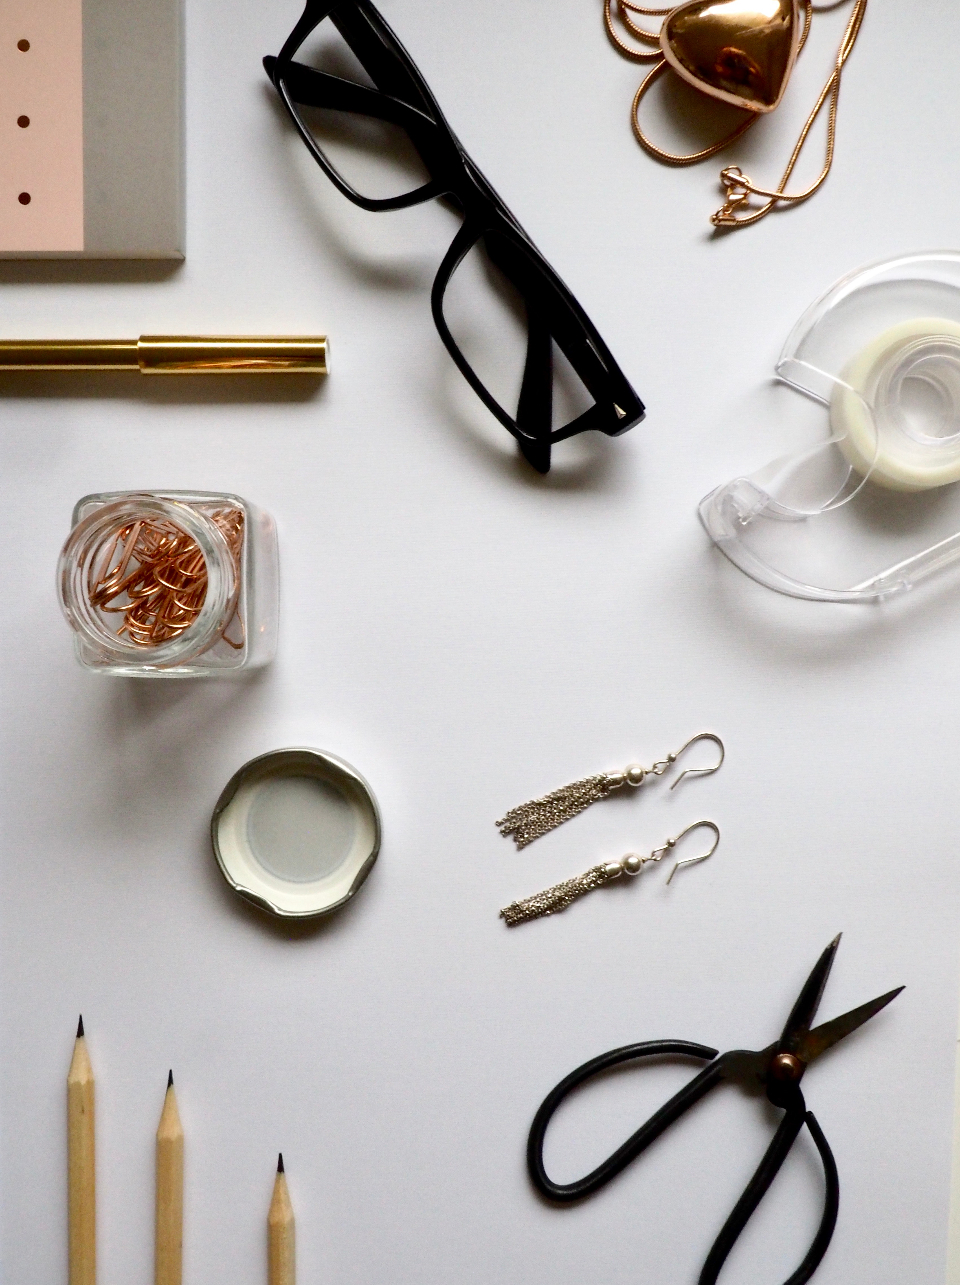 Free stock photo of office essentials